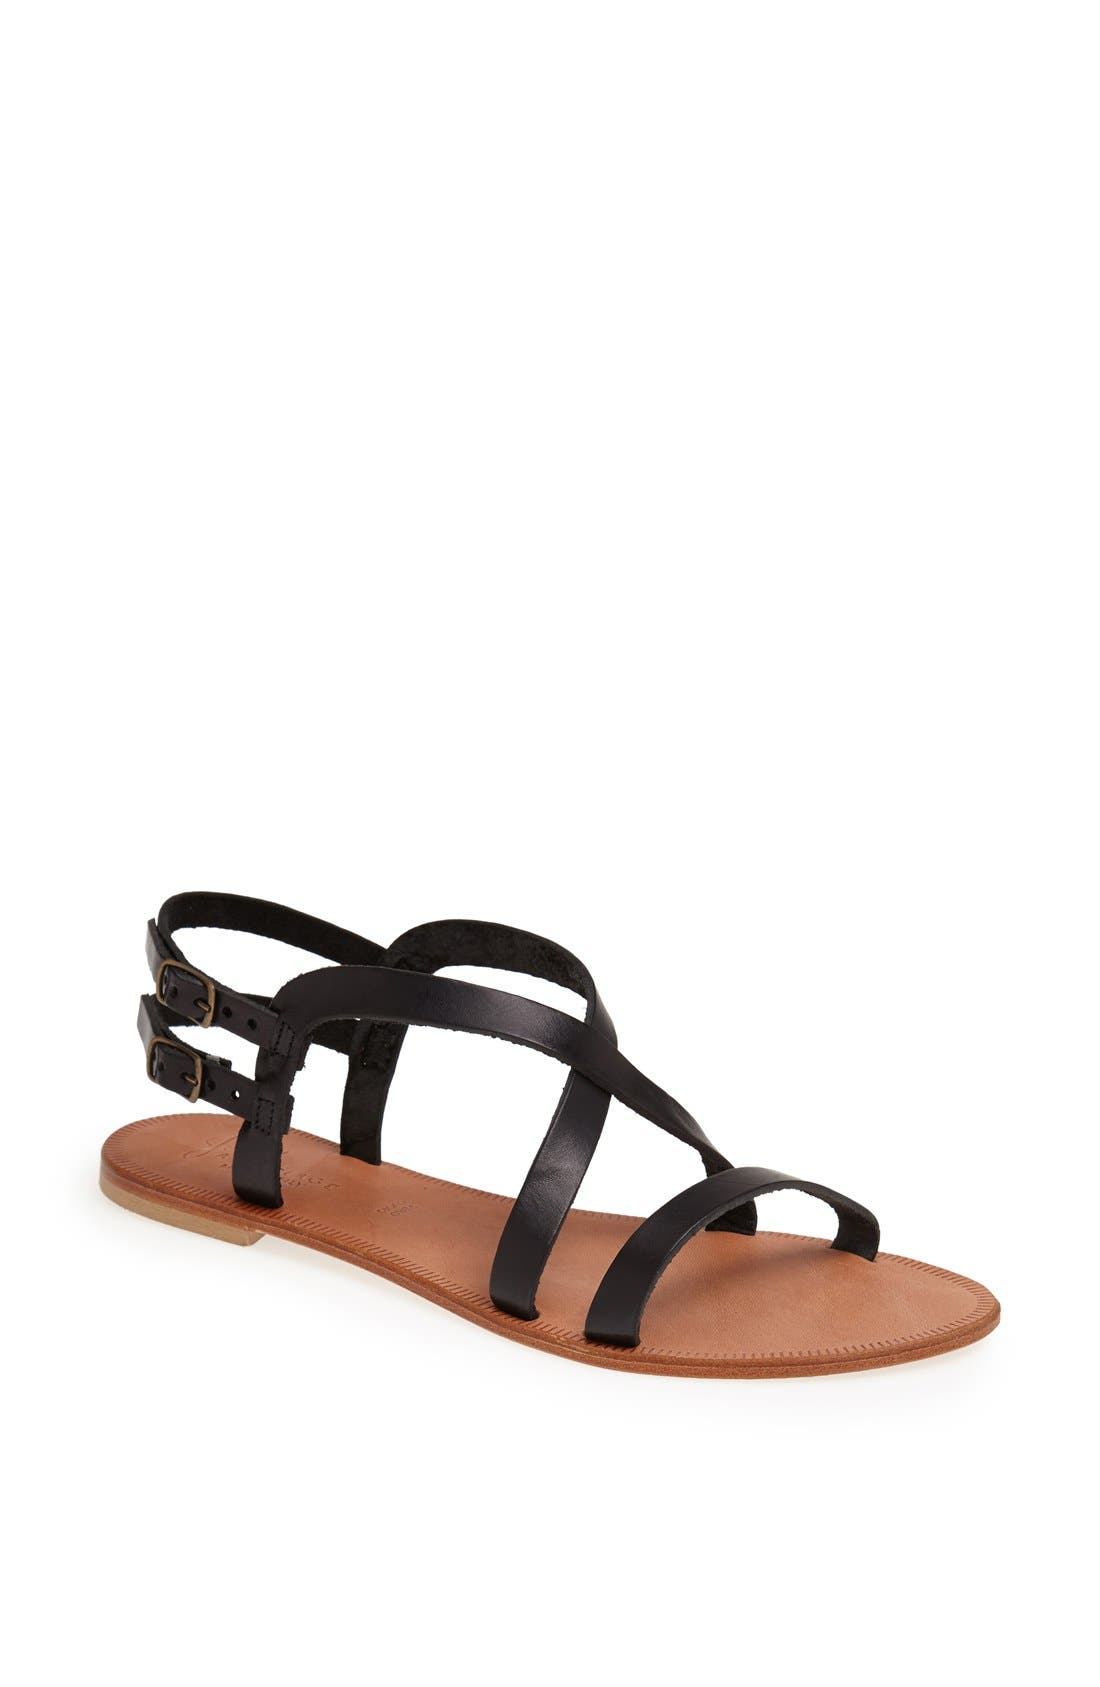 Alternate Image 1 Selected - Joie a la Plage 'Socoa' Leather Sandal (Women)